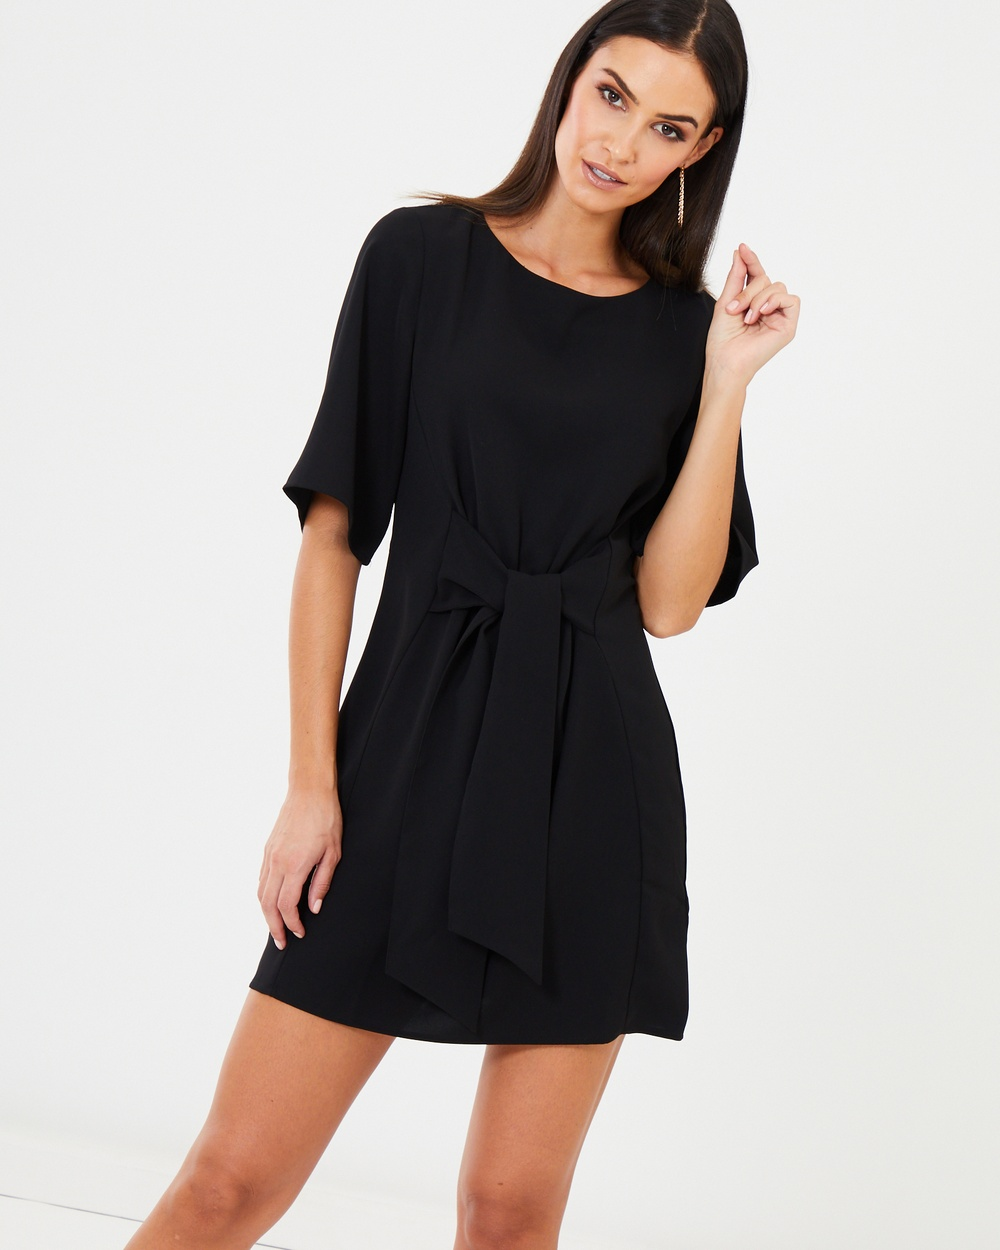 Photo of Tussah Black Arielle Tie Front Dress - beautiful dress from Tussah online